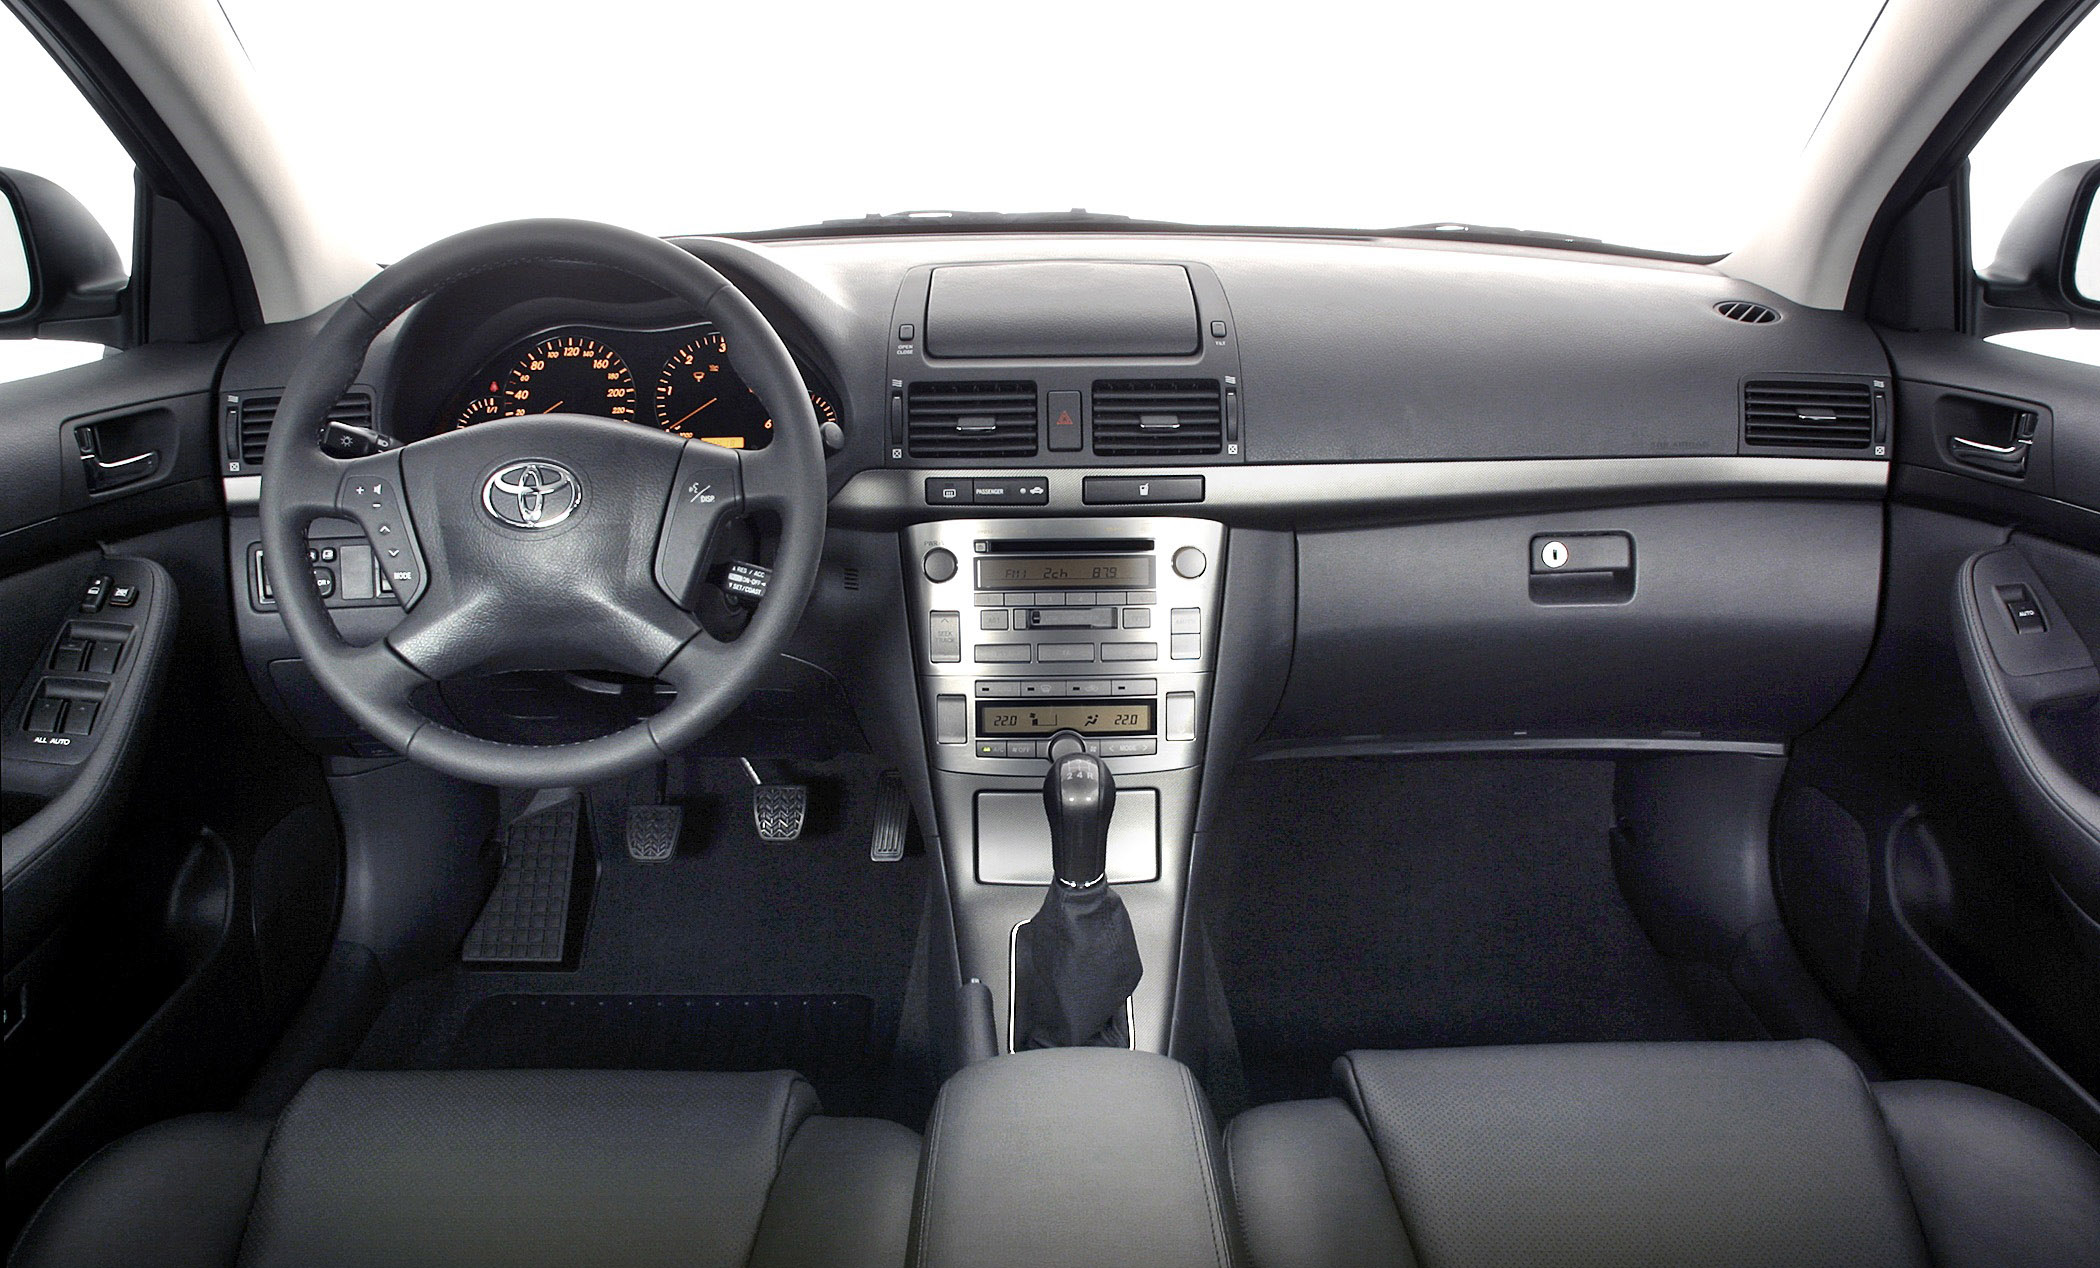 2002 Toyota Avensis Picture 76930